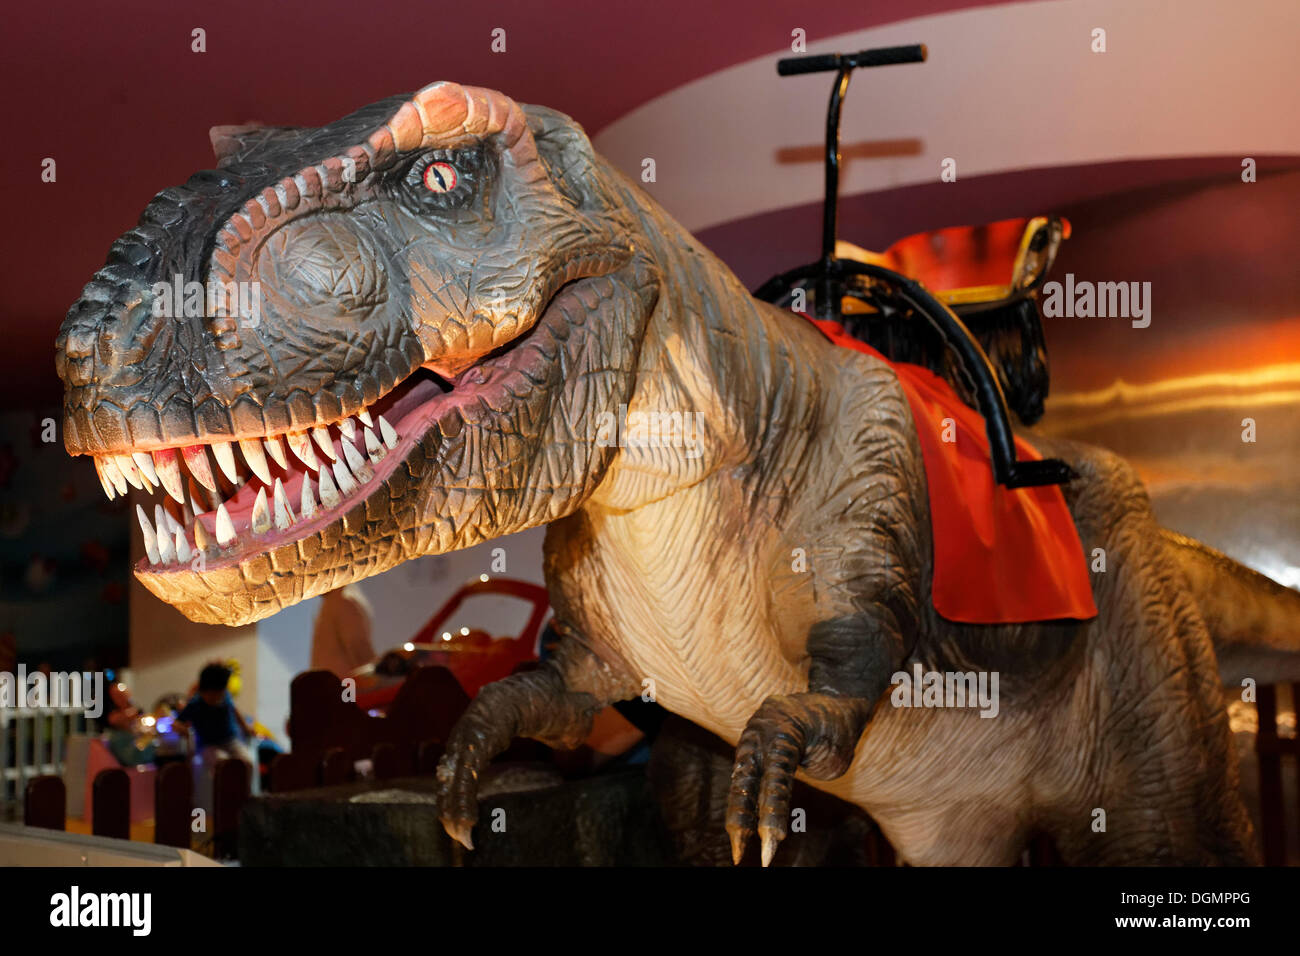 Ride a Dino for teenagers, moving dinosaurs, Mall of the Emirates, shopping centre, Dubai, United Arab Emirates, Middle East - Stock Image